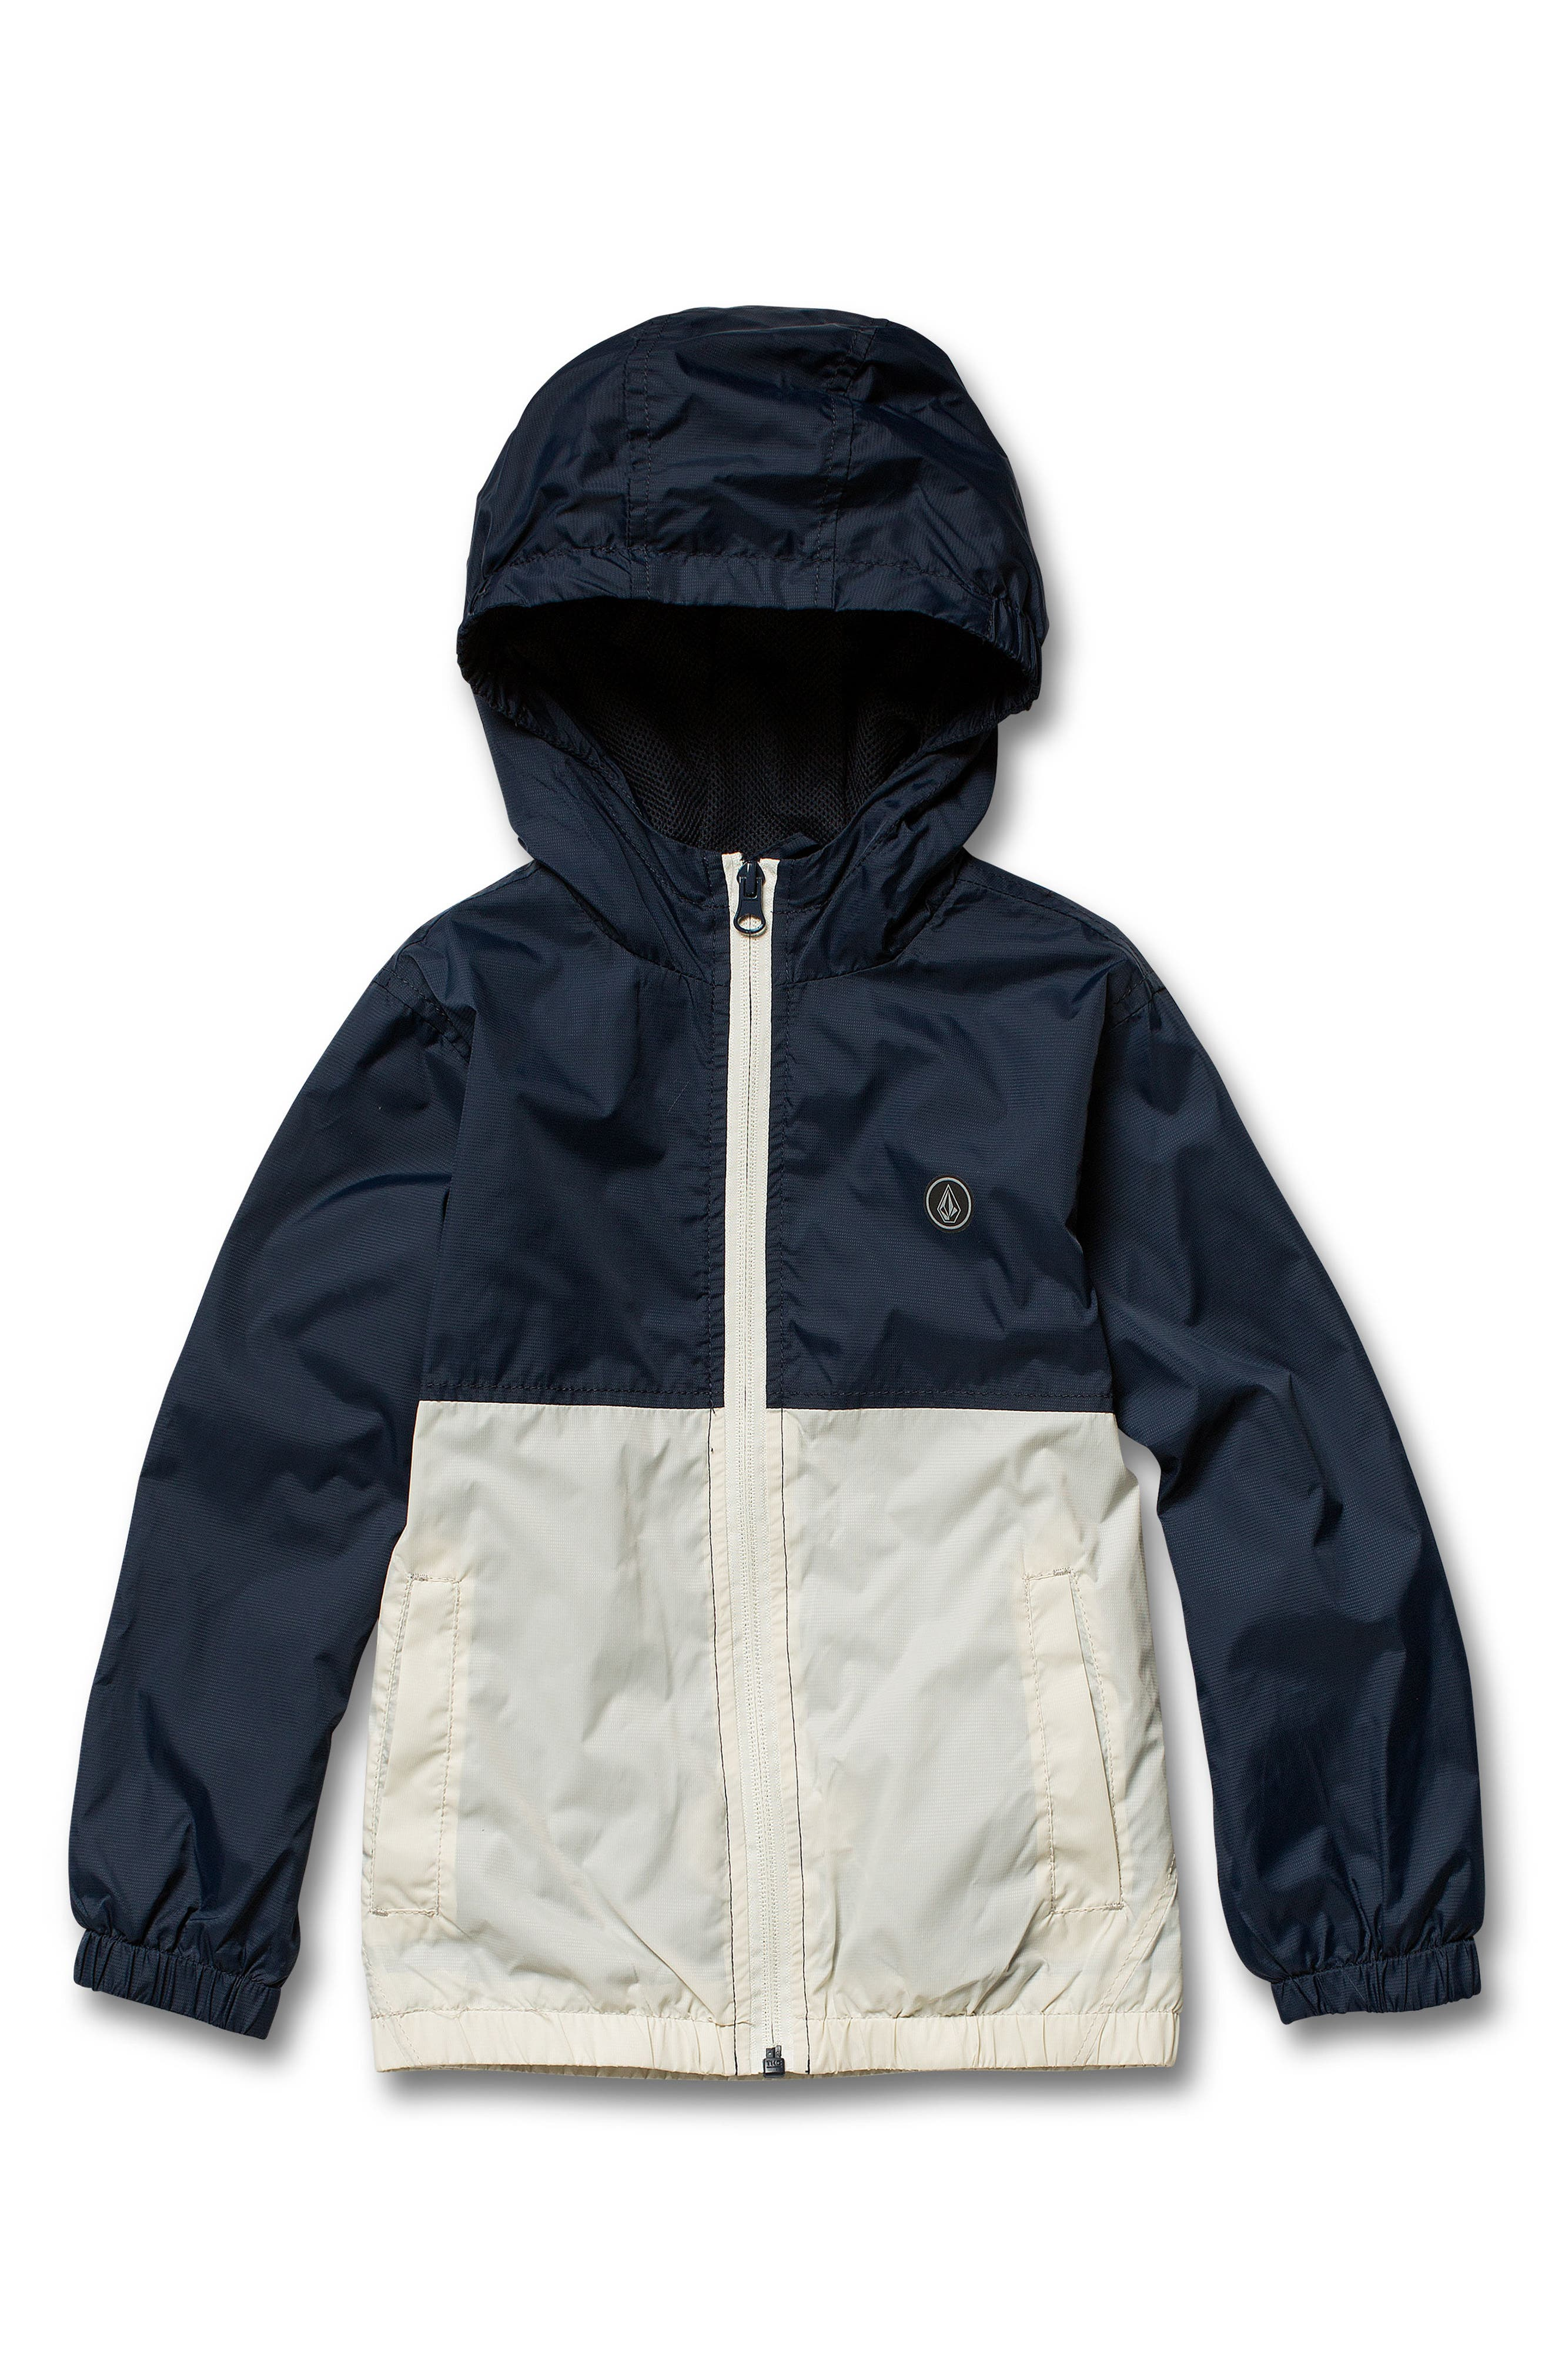 Ermont Hooded Nylon Jacket,                         Main,                         color, 485